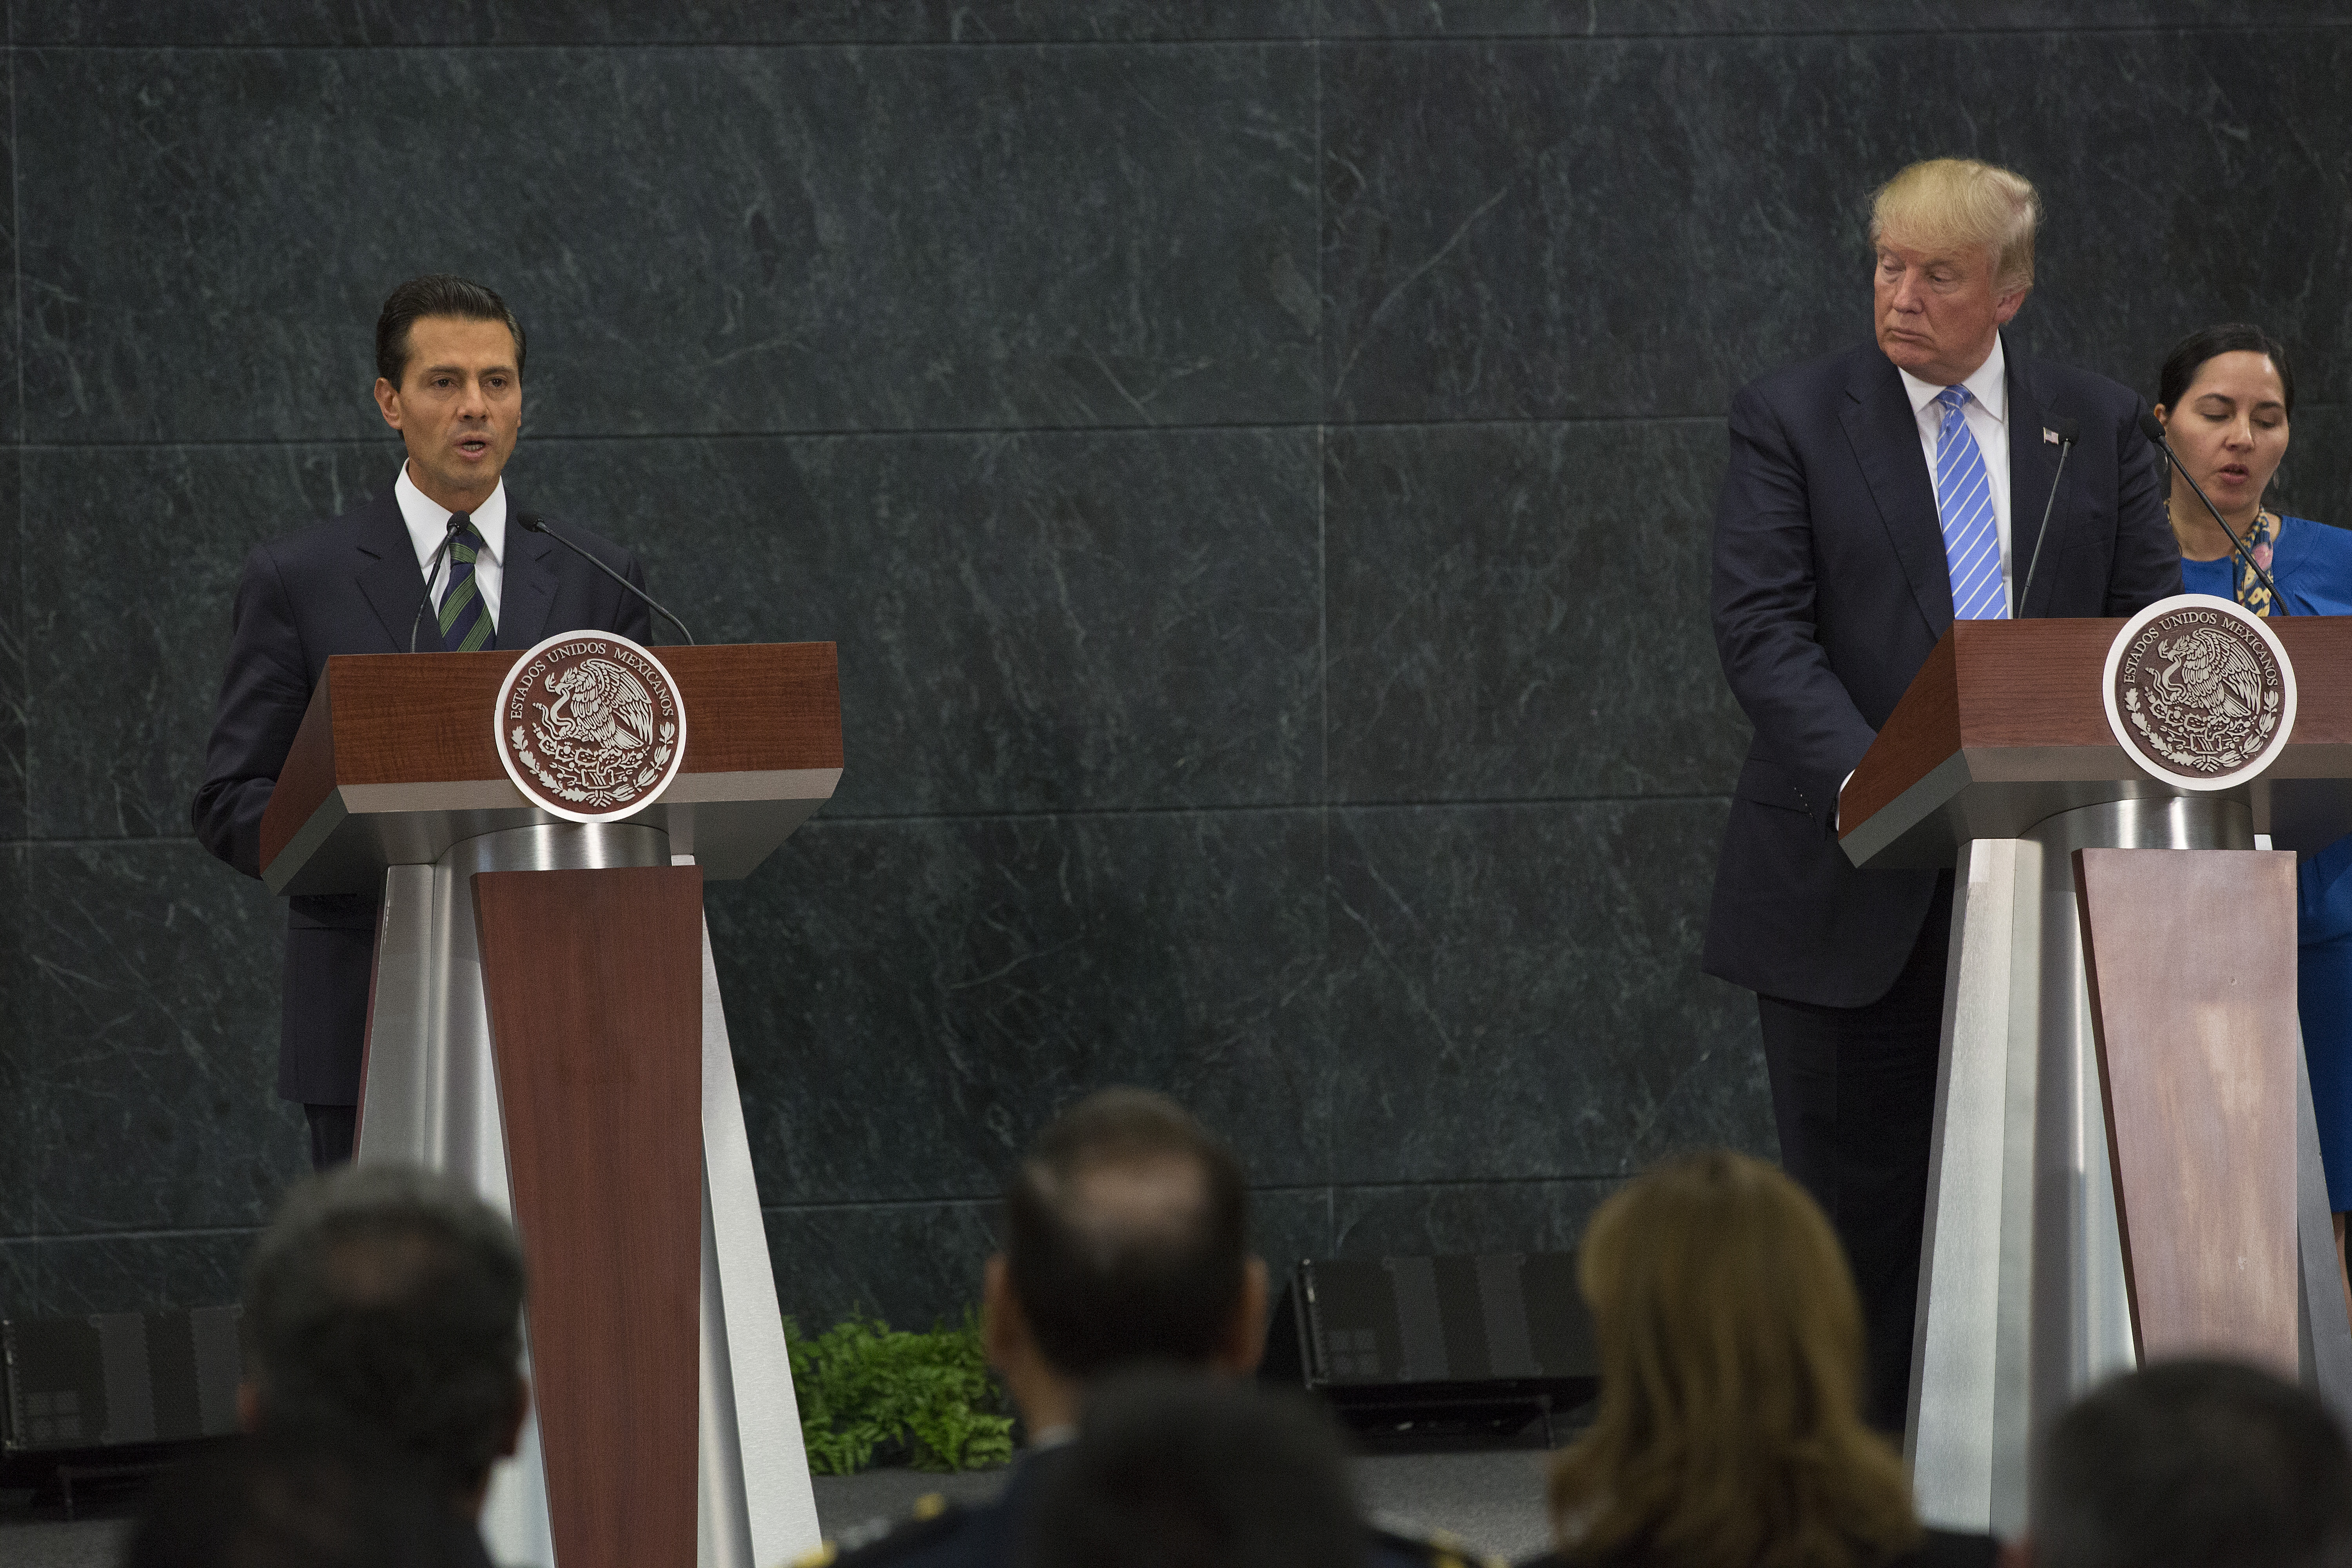 Enrique Pena Nieto, Mexico's president, left, speaks as Donald Trump, 2016 Republican presidential nominee, listens during a joint conference in Mexico City, Mexico, on Wednesday, Aug. 31, 2016. Bloomberg—Bloomberg via Getty Images